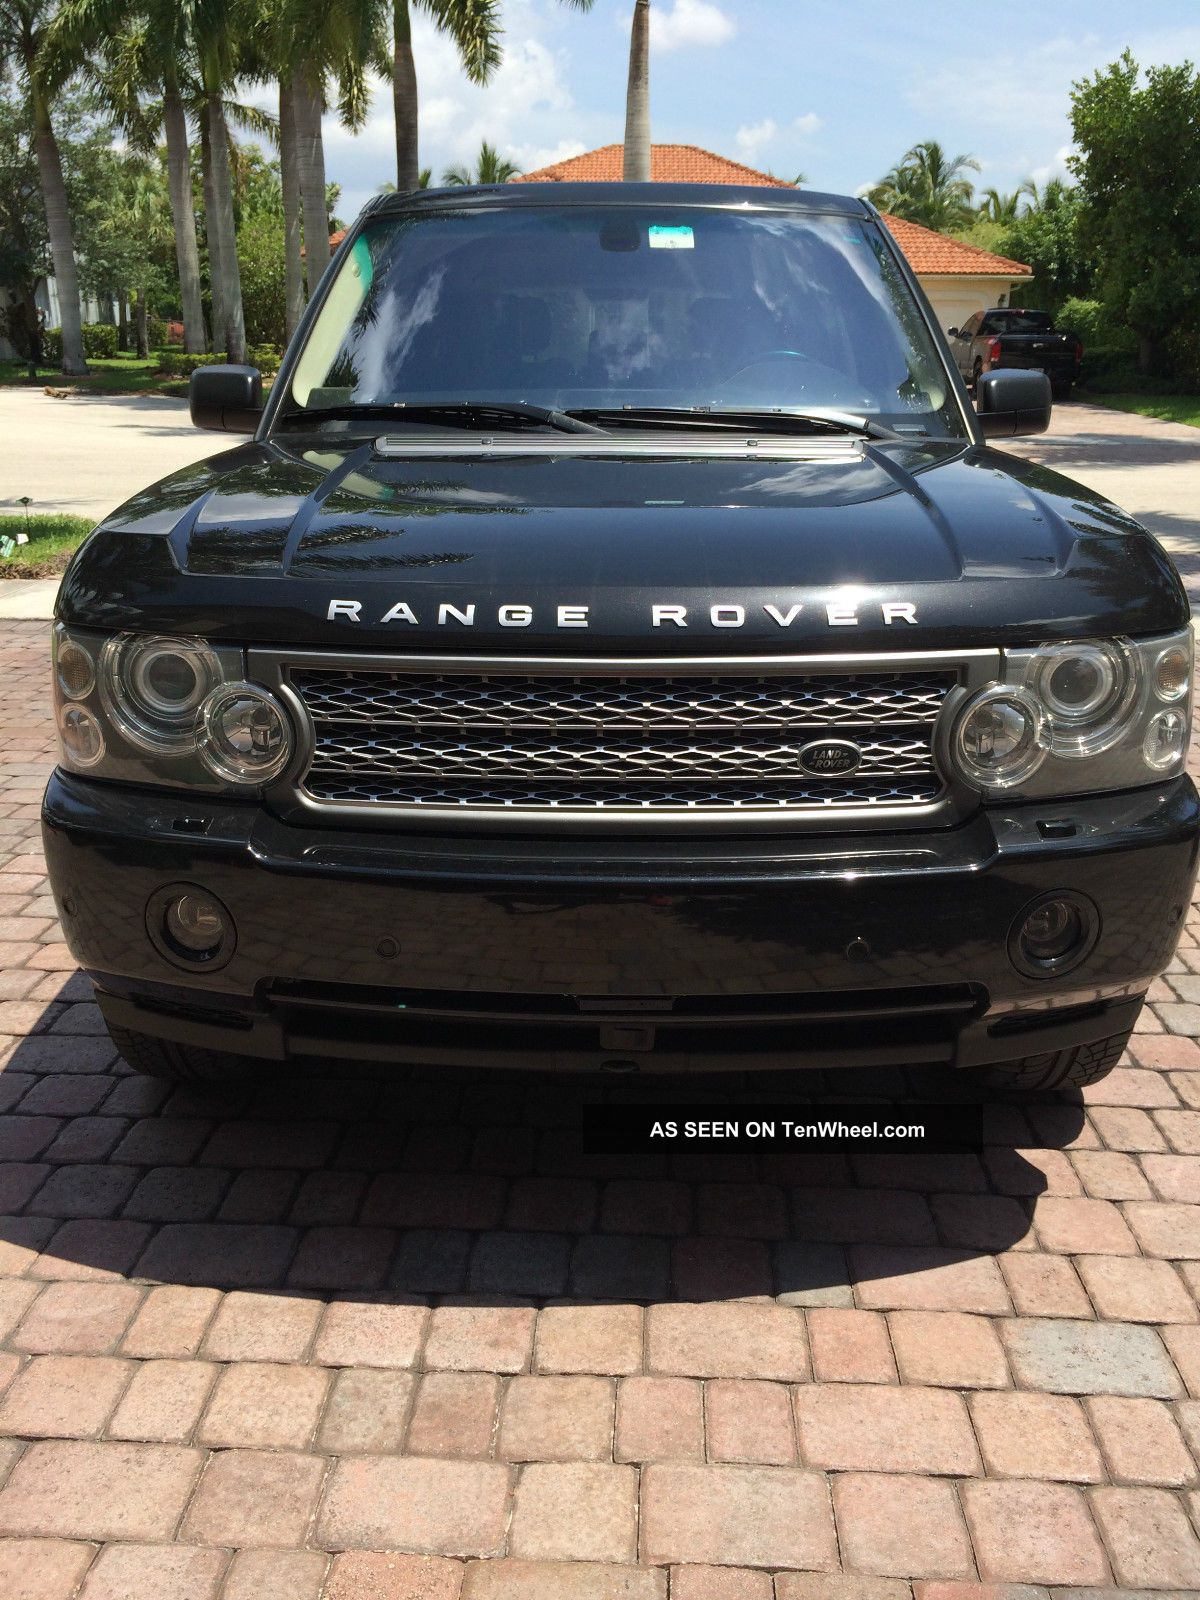 2009 Land Rover Range Rover Autobiography Black / Black Range Rover photo